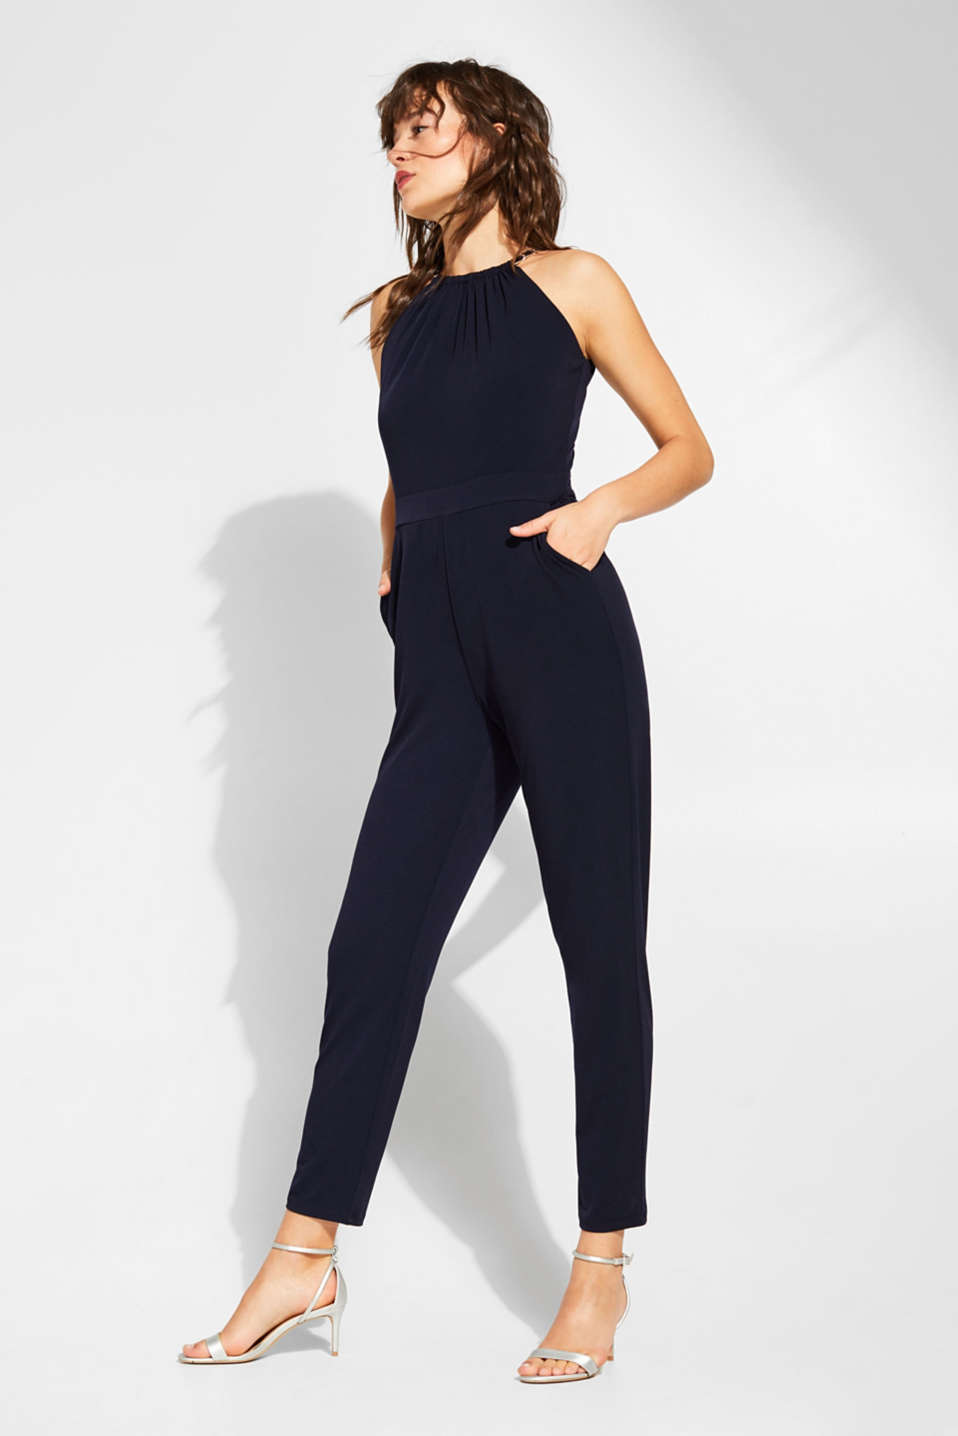 Esprit - Stretch jersey jumpsuit with chain details